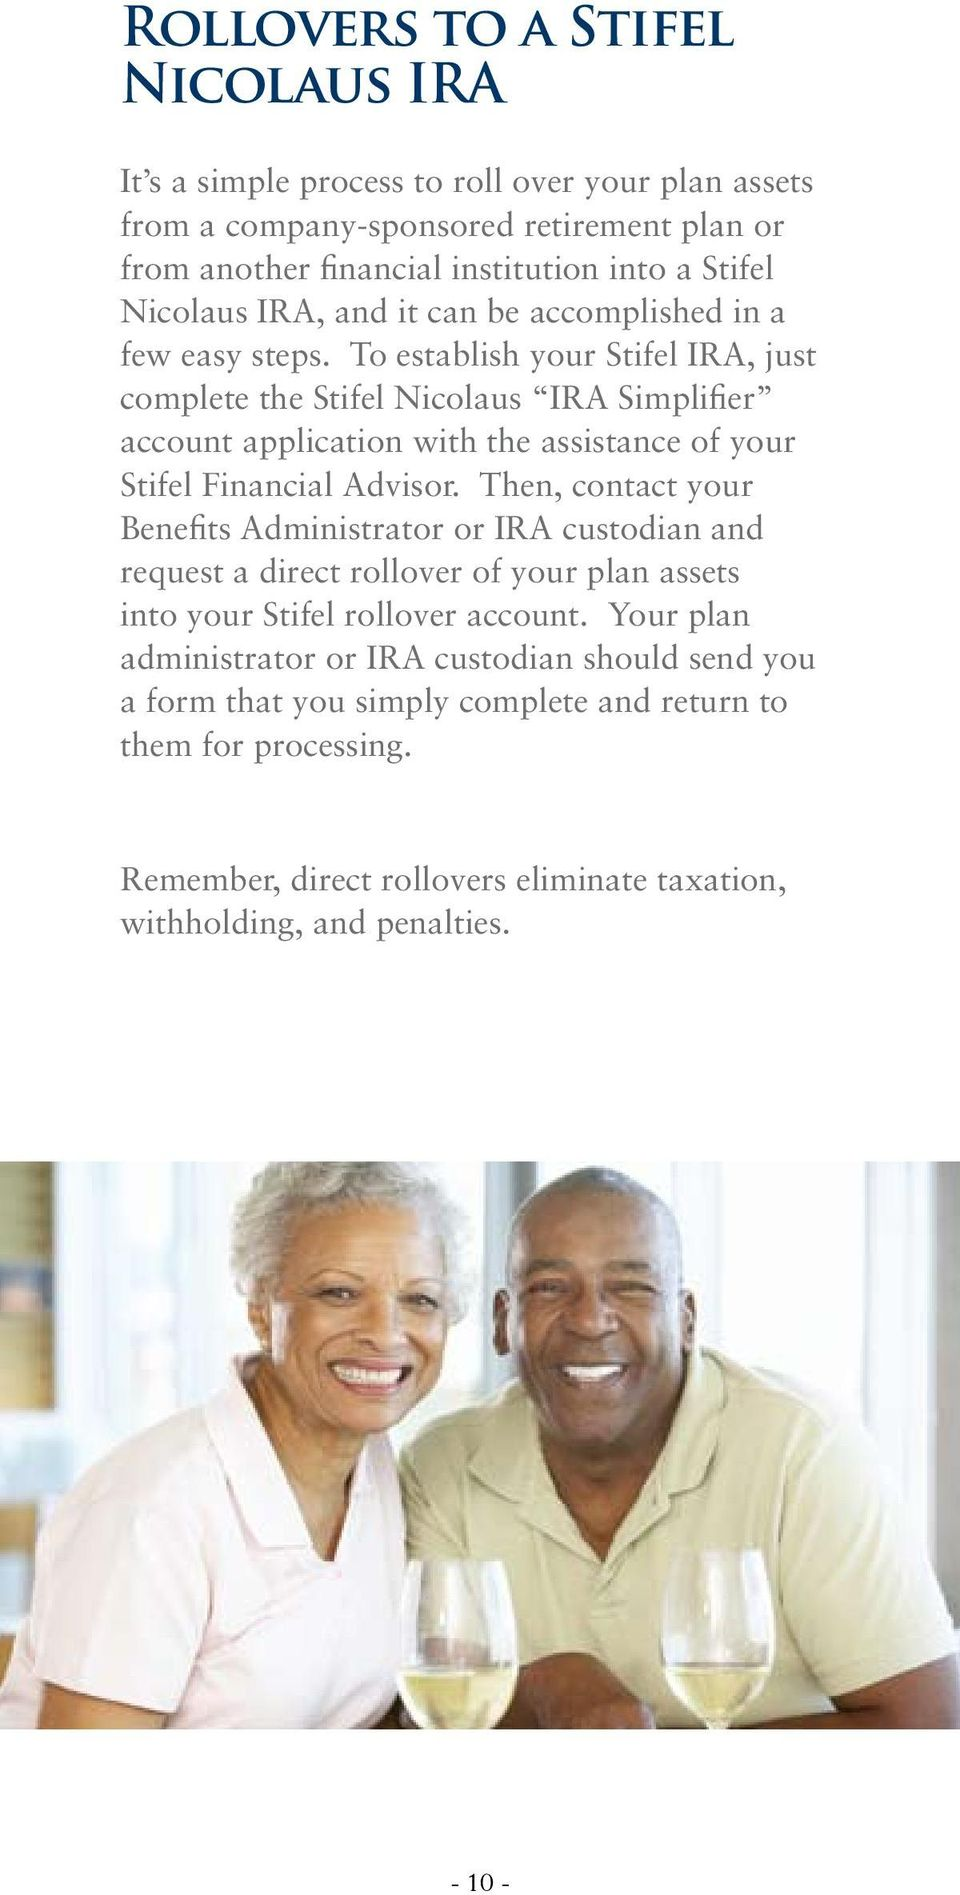 To establish your Stifel IRA, just complete the Stifel Nicolaus IRA Simplifier account application with the assistance of your Stifel Financial Advisor.